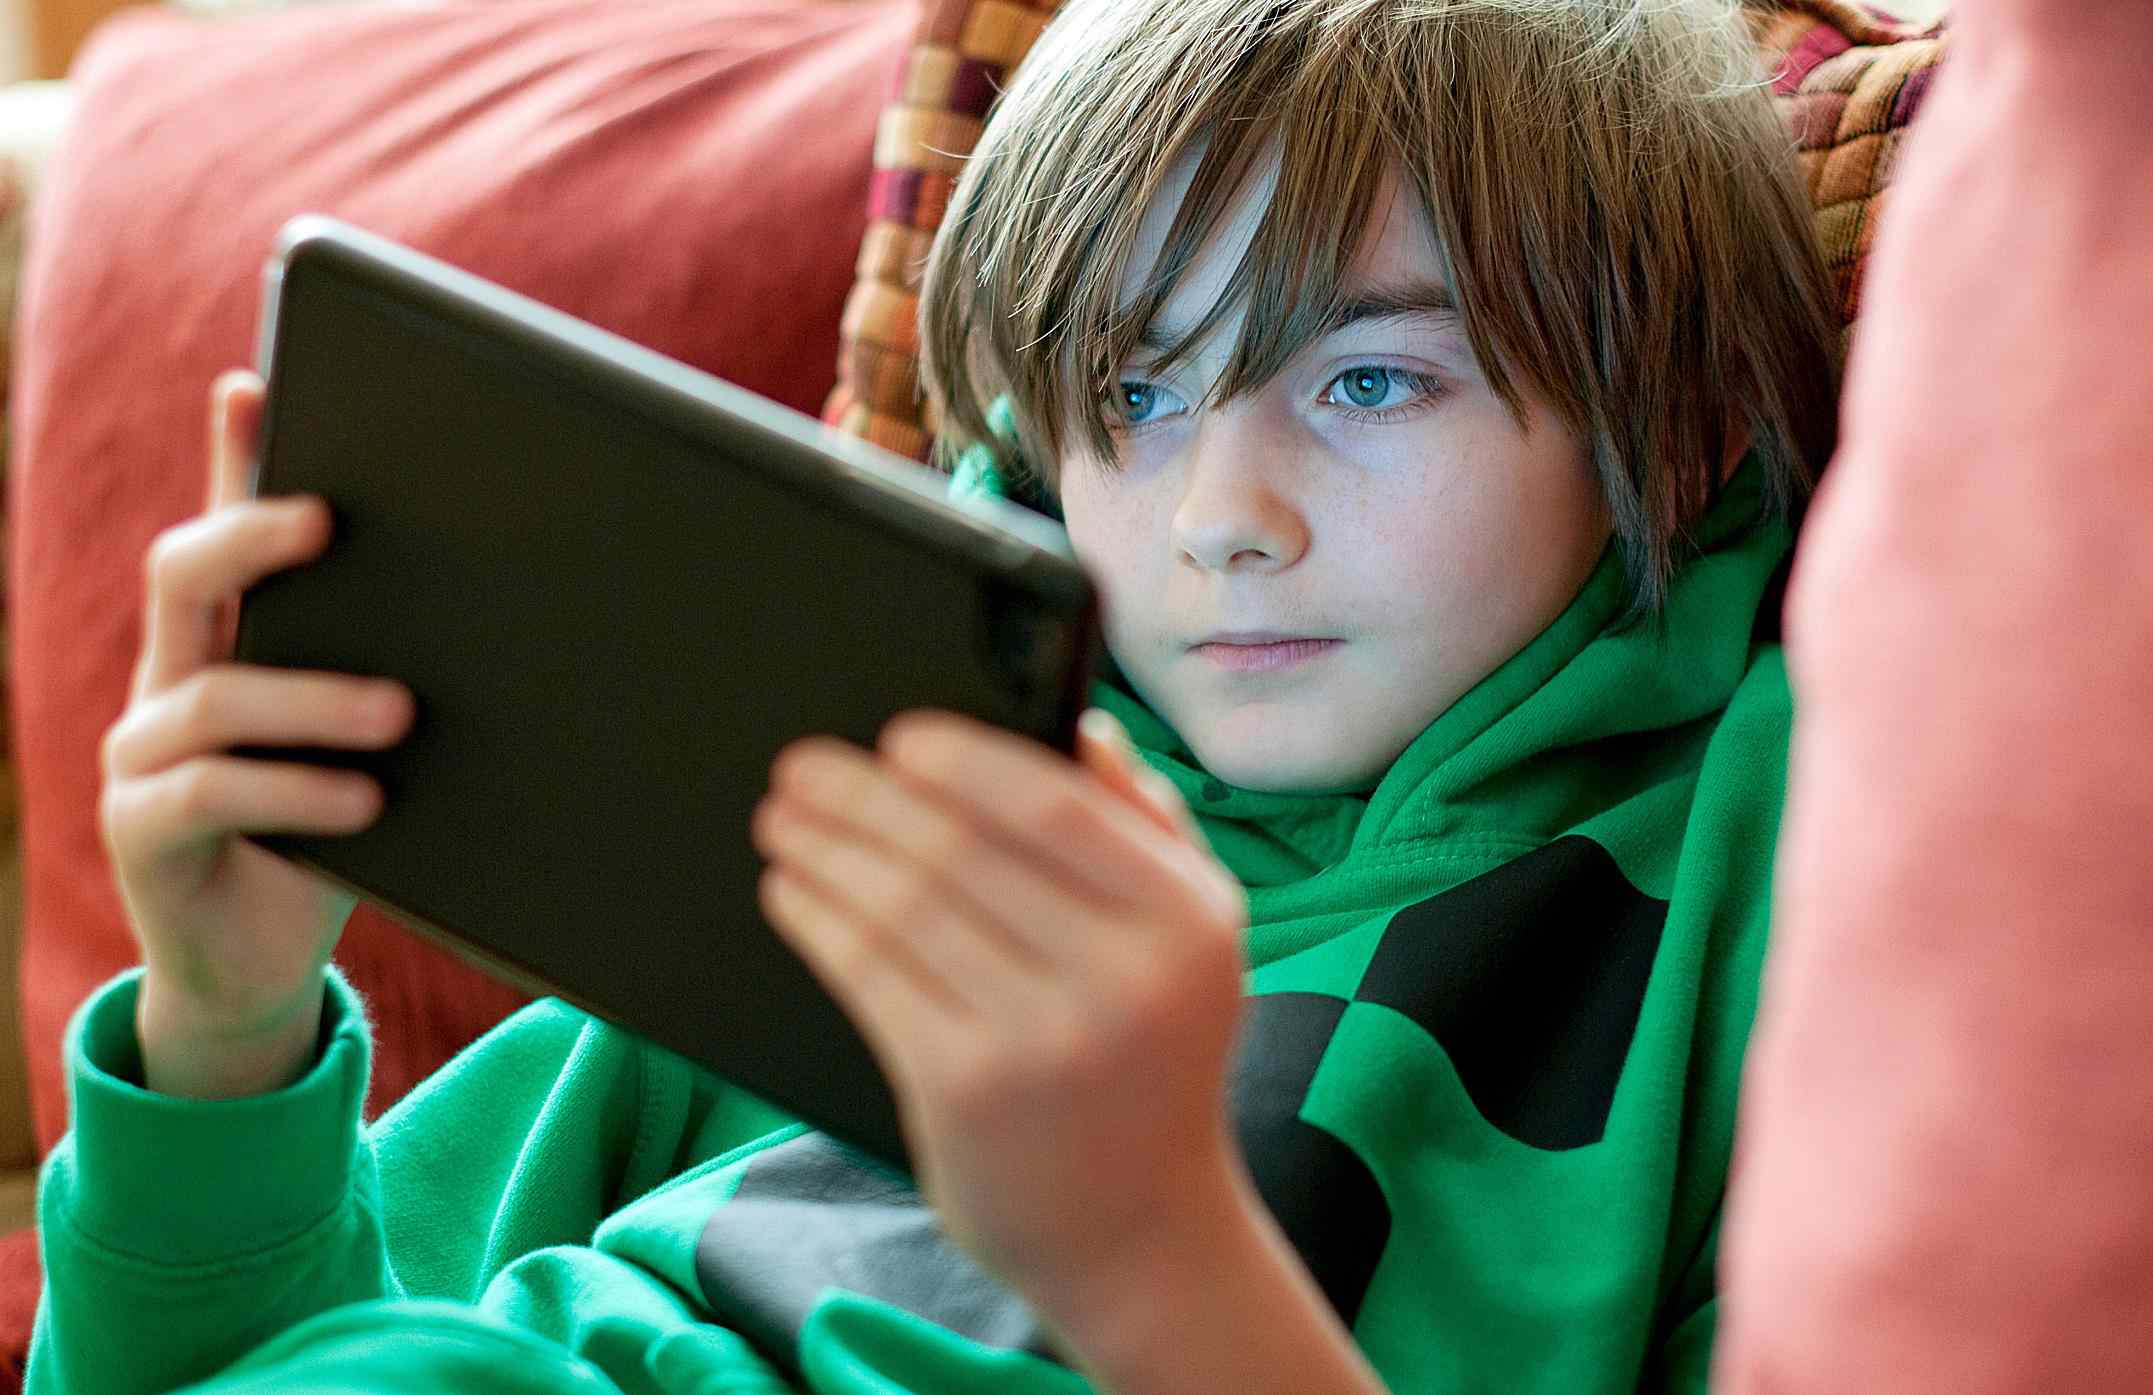 Boy playing games on digital tablet